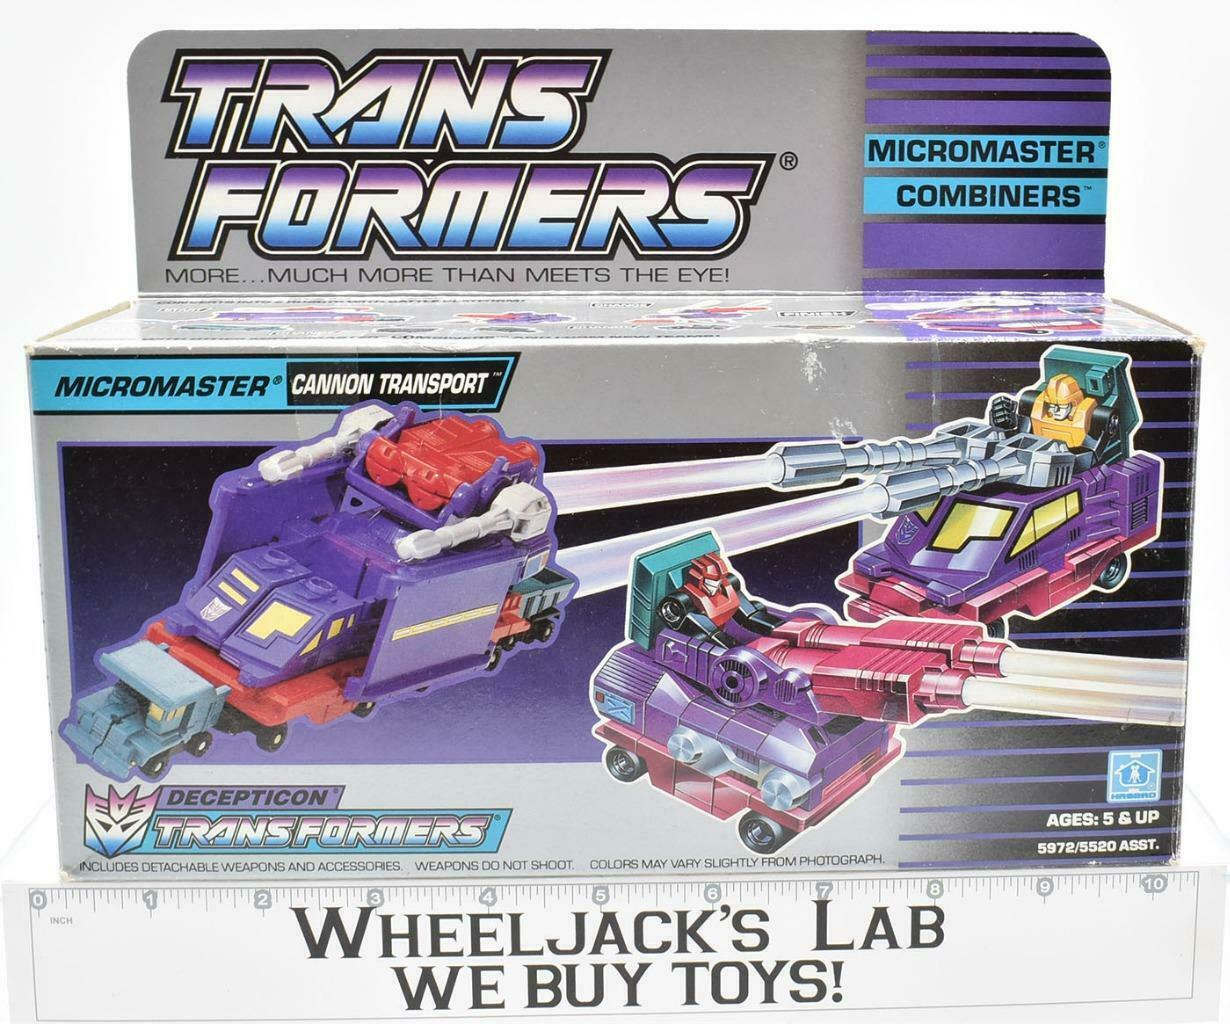 Cannon Transport Micromaster MIB 100% Complete D 1990 Vintage G1 Transformers